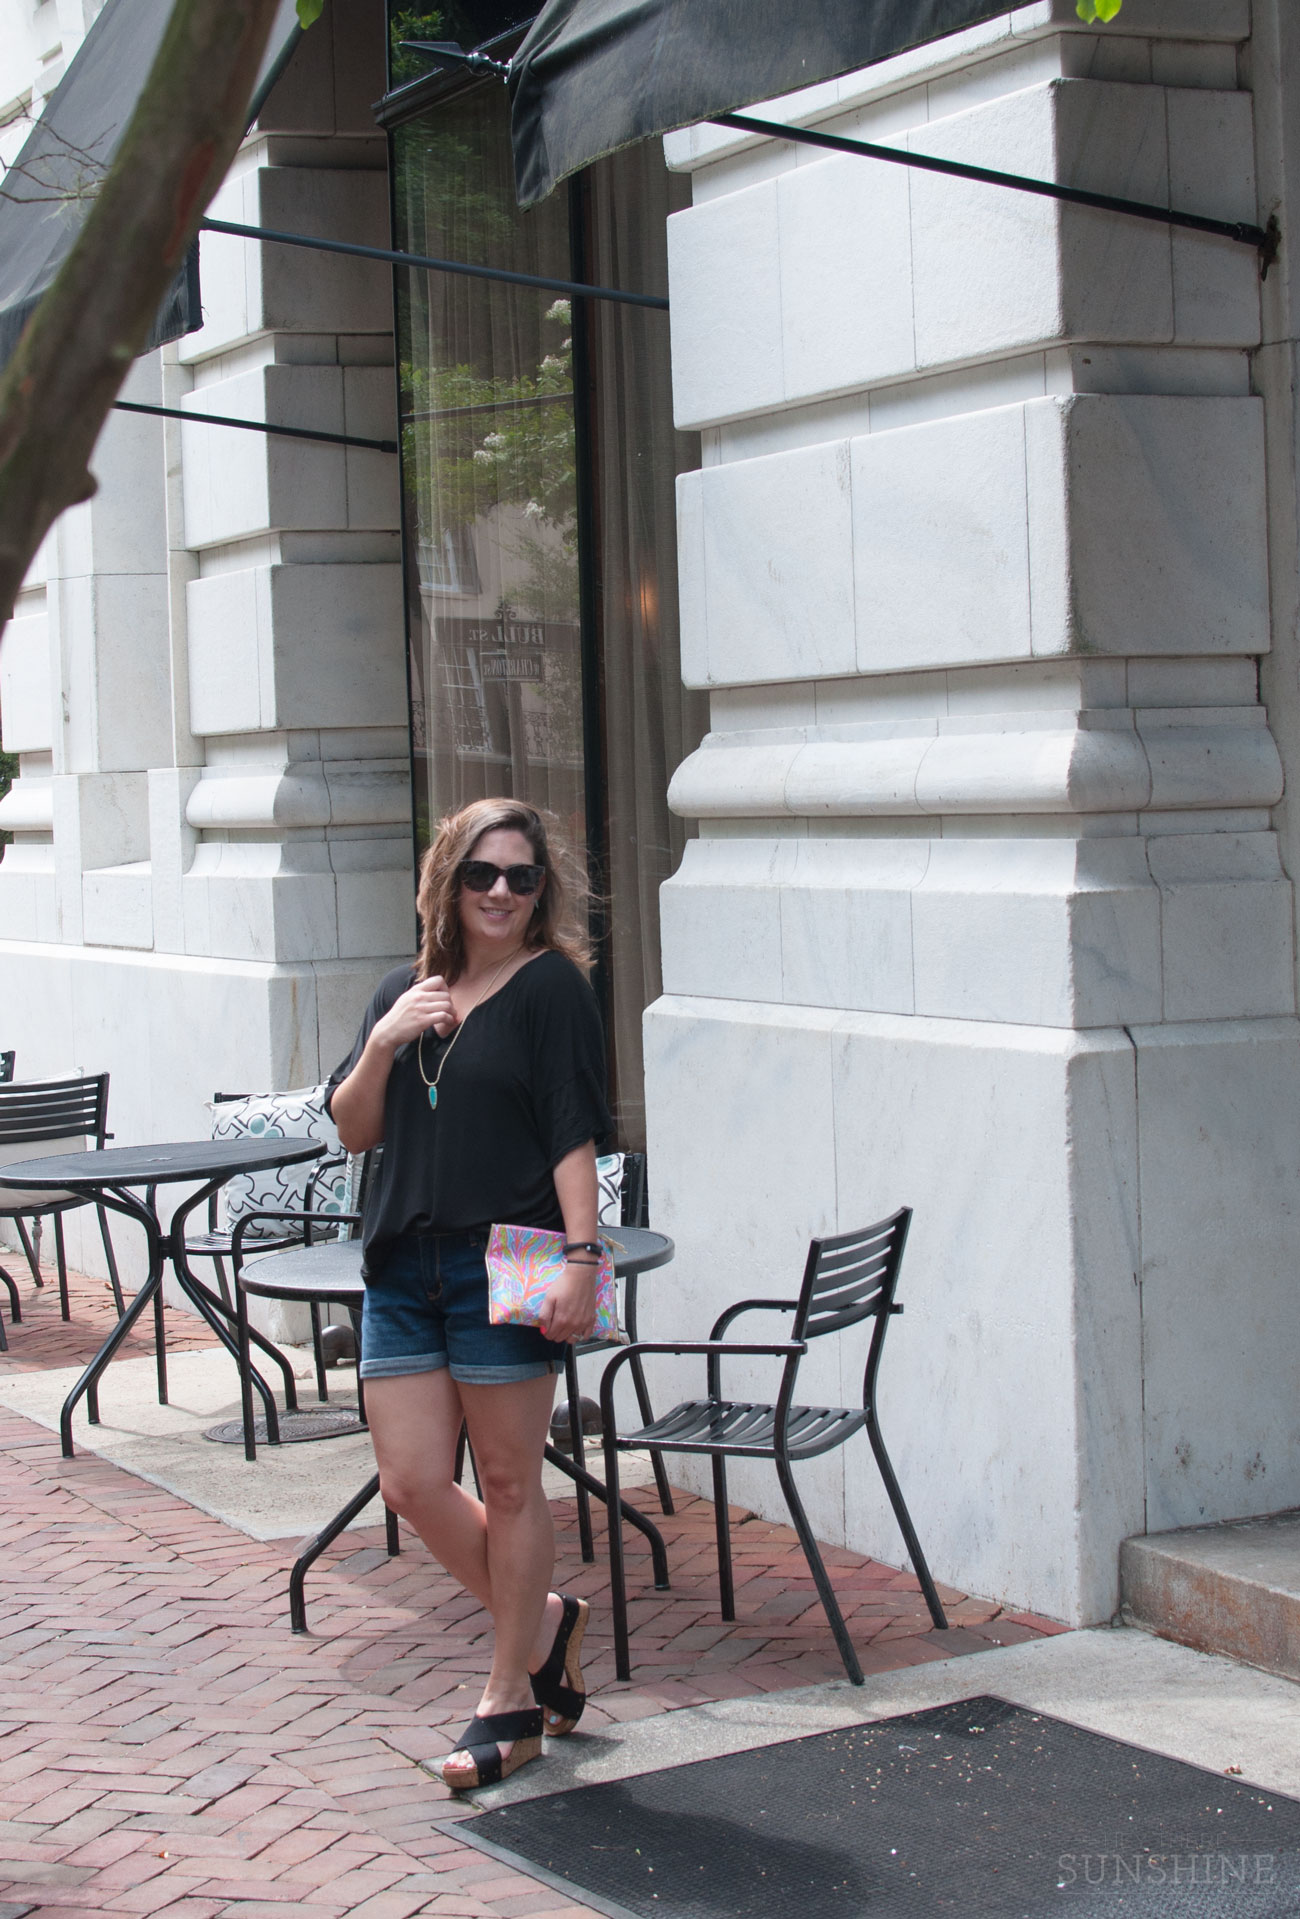 Black slouchy top & denim shorts, the best summer travel outfit!